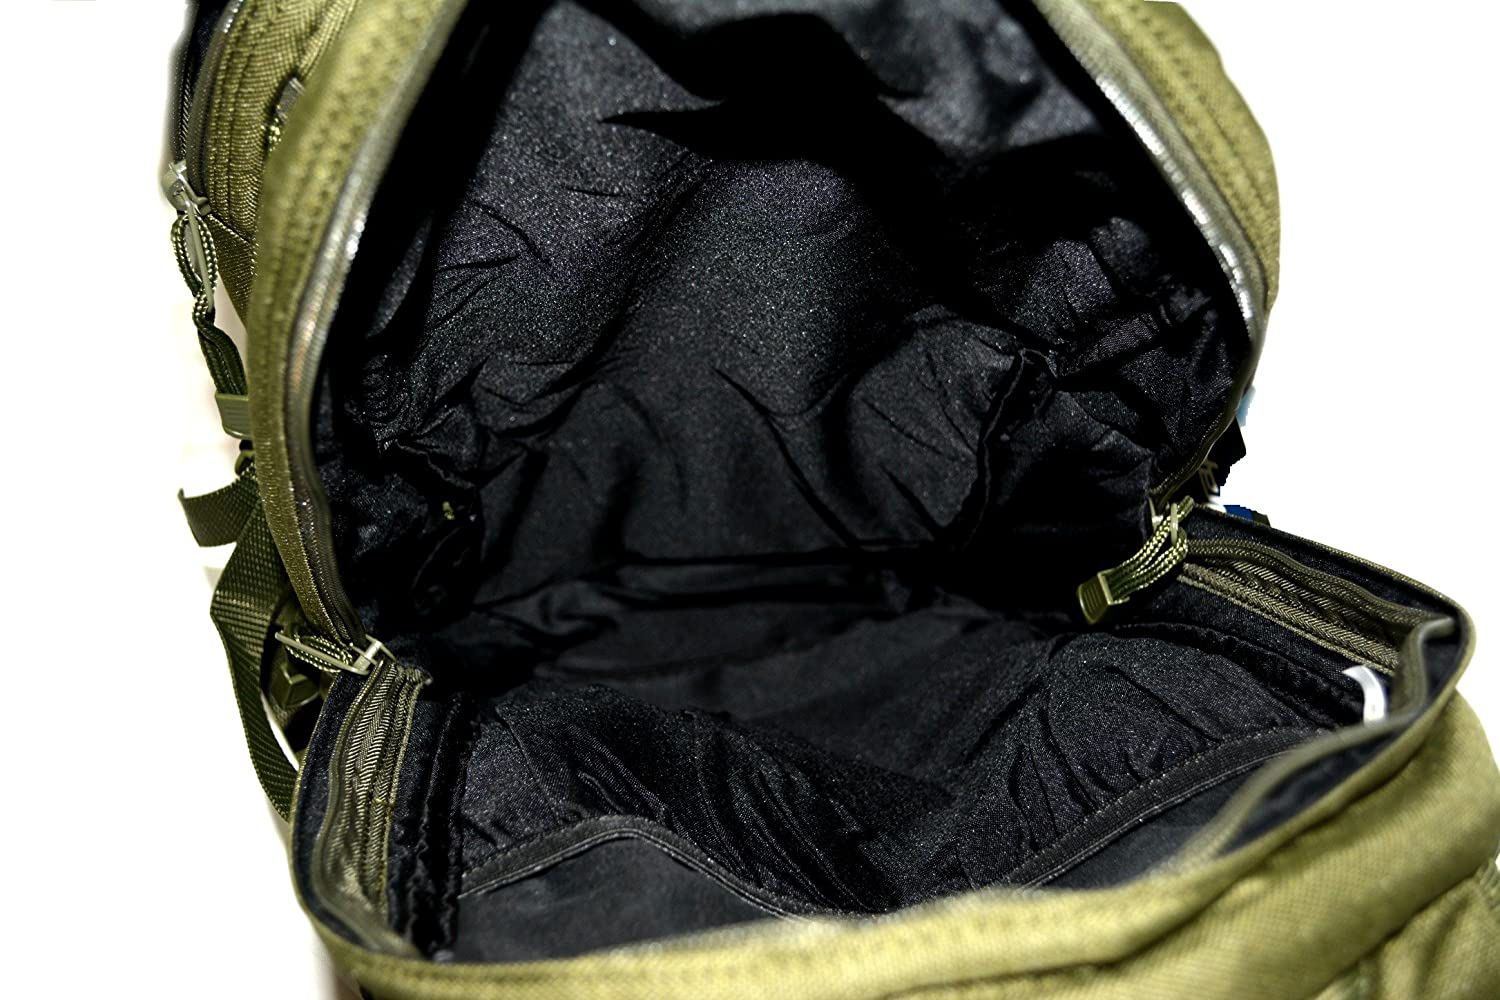 HYDRO DAYPACK 3970OD Olive Drab color